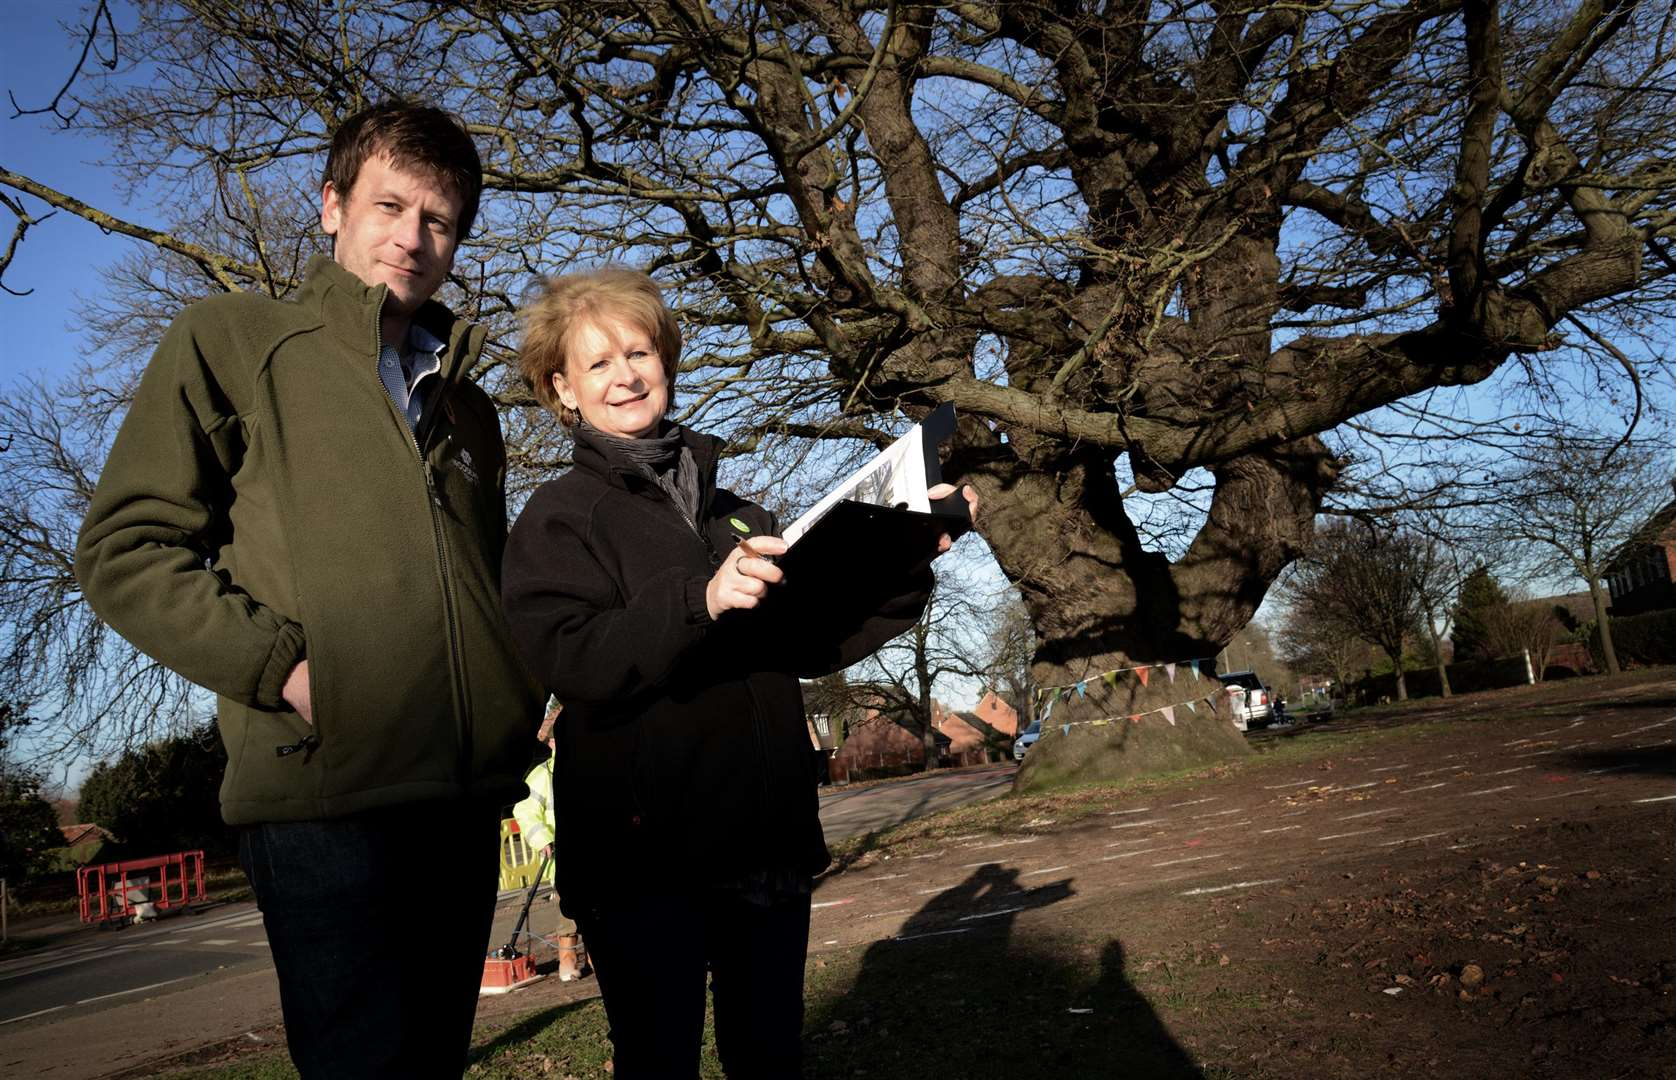 Joseph Coles and Denise Tegerdine, of the Woodland Trust, by the iconic oak in Belton Lane, Grantham. (5985639)